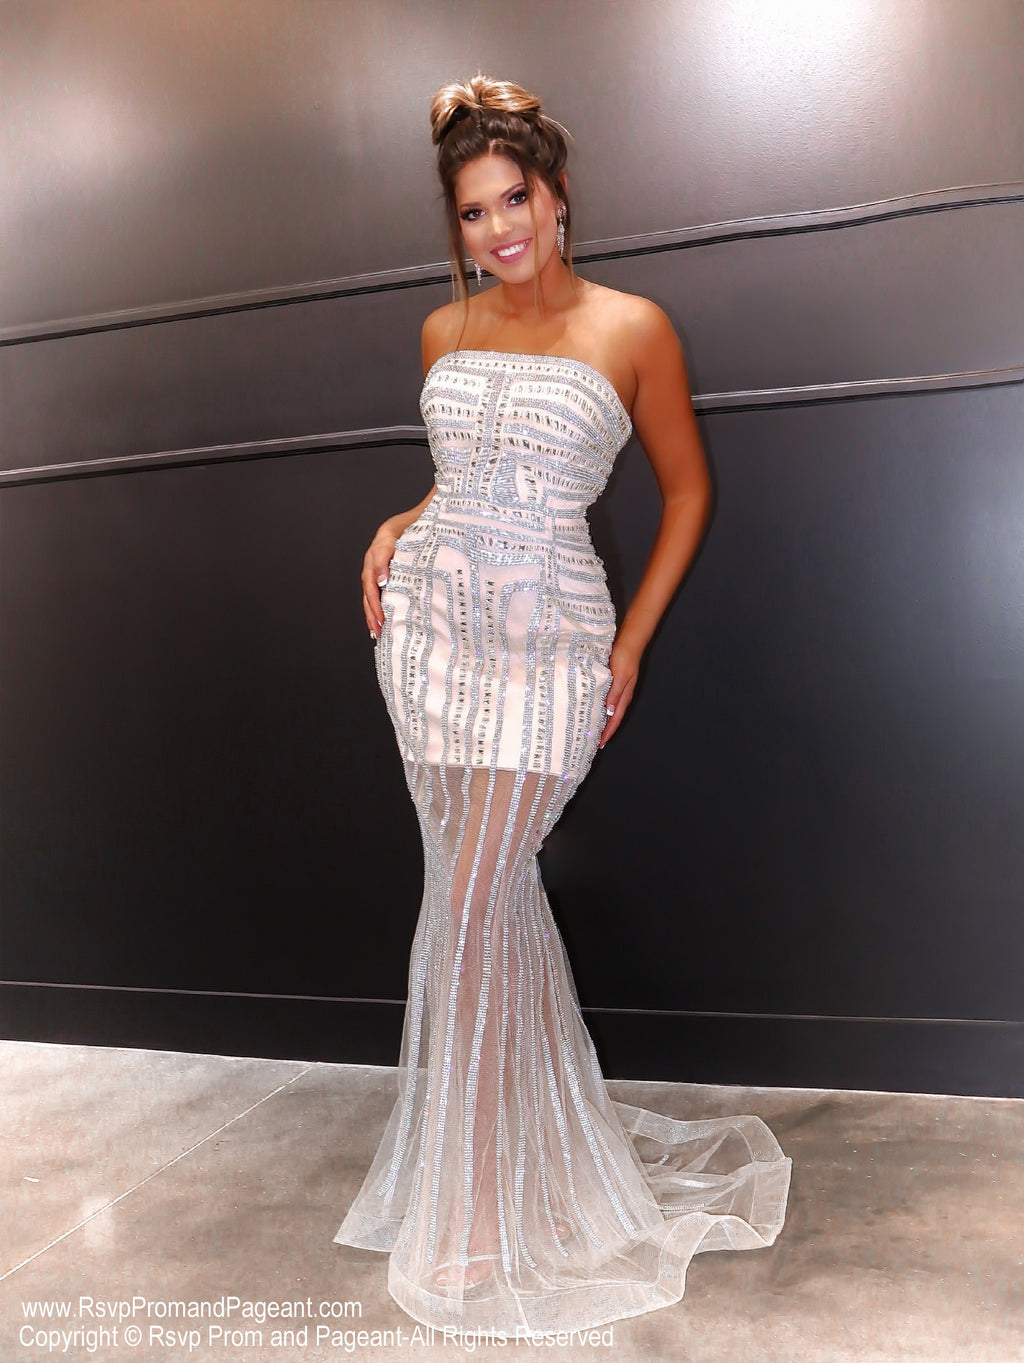 Model in a dazzling evening gown which has a sheer skirt and sparkling details all over! And it's at Rsvp Prom and Pageant, your source for the HOTTEST Prom and Pageant Dresses and exclusive evening gowns and located in Atlanta, Georgia!